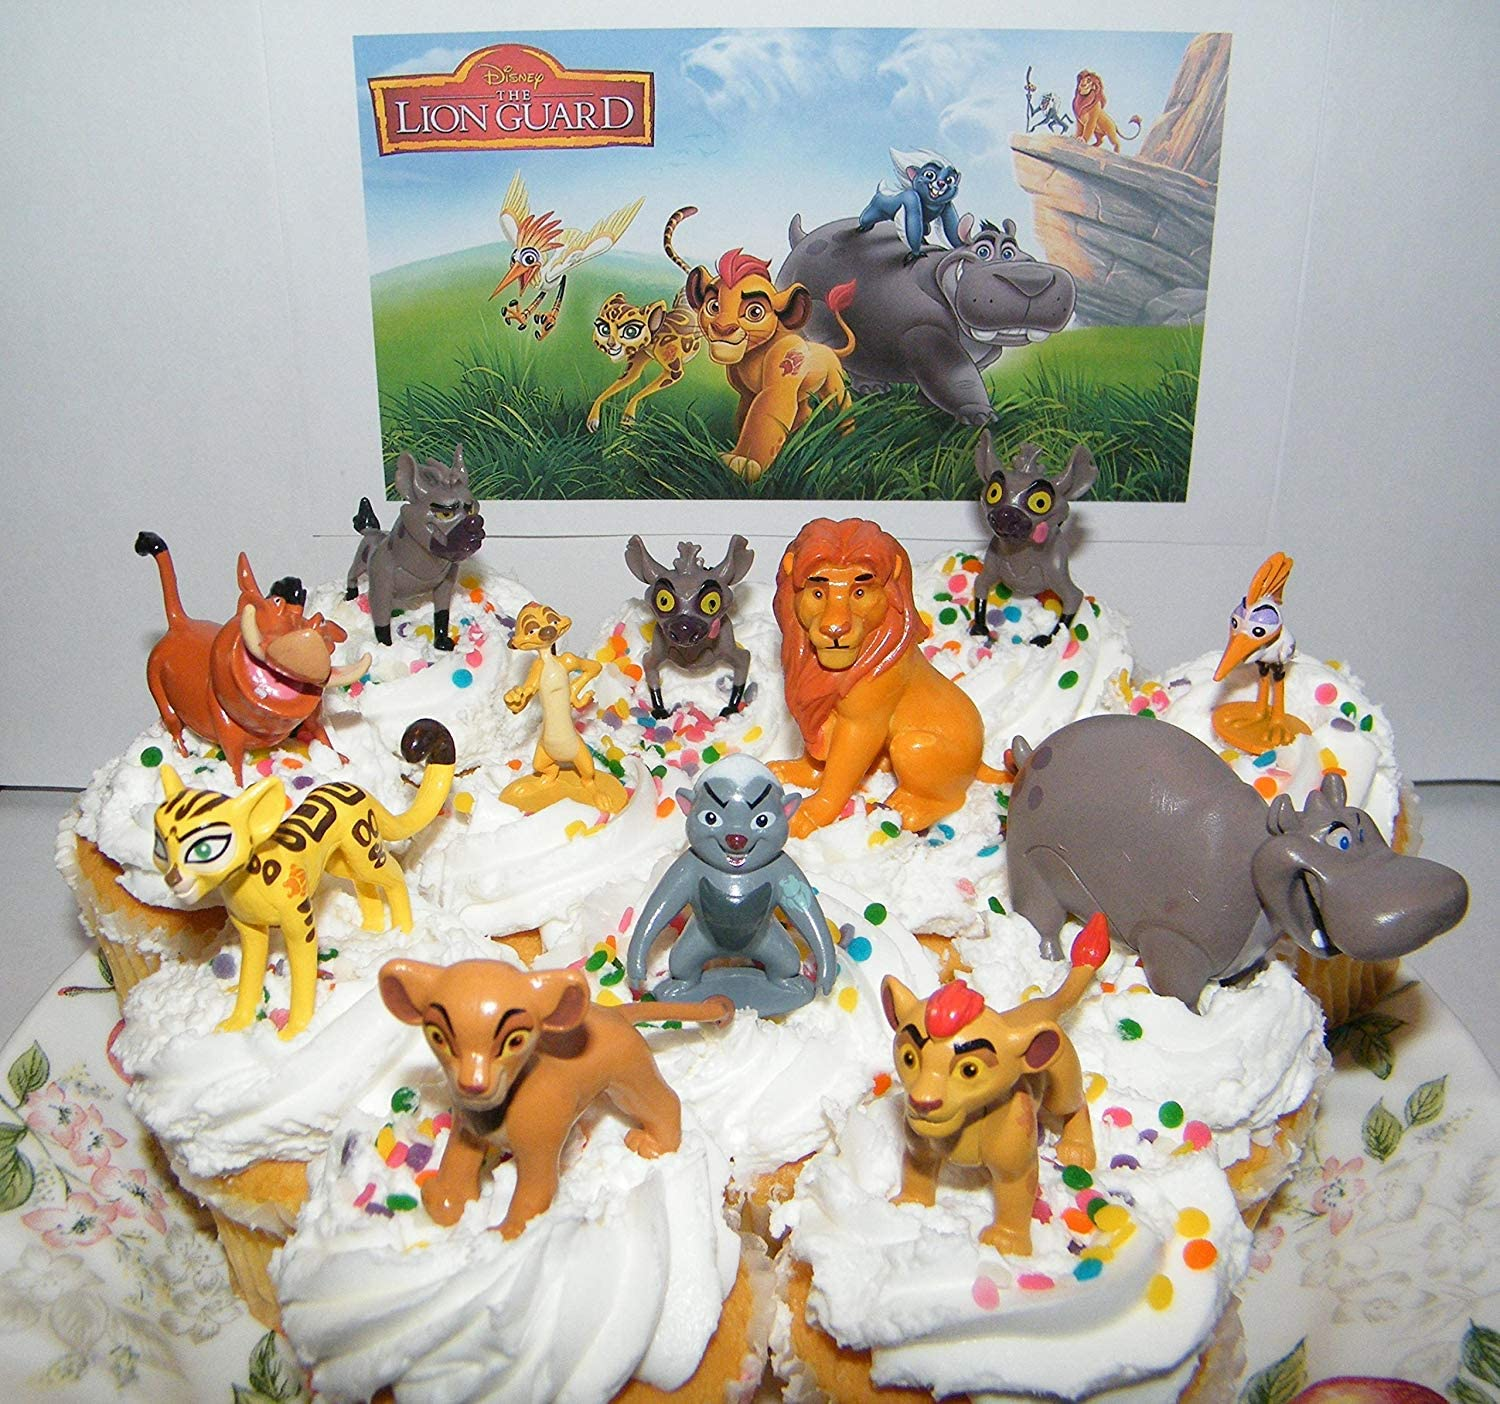 Disney The Lion Guard Deluxe Mini Cake Toppers Cupcake Decorations Set Of 13 Figures With The 5 Lion Guard Figures King Simba Simon Pumon And More By The Lion Guard Amazon Ca Toys